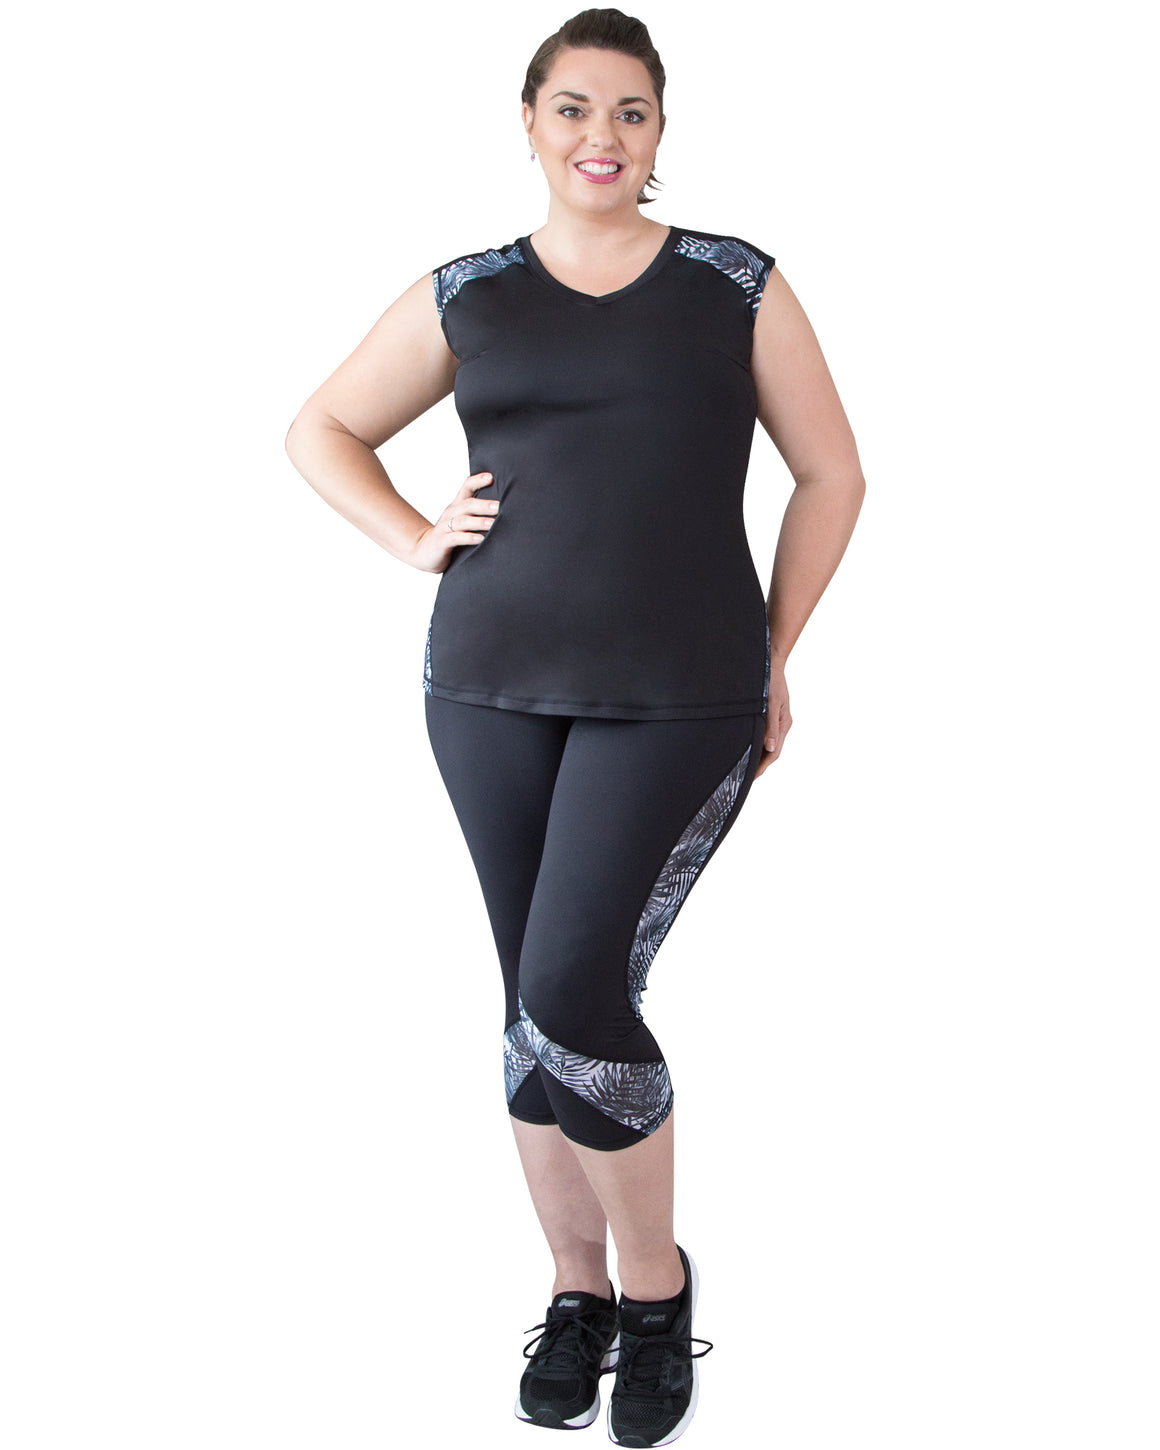 Andi Plus Size Sports Top | Curvy Chic Sports